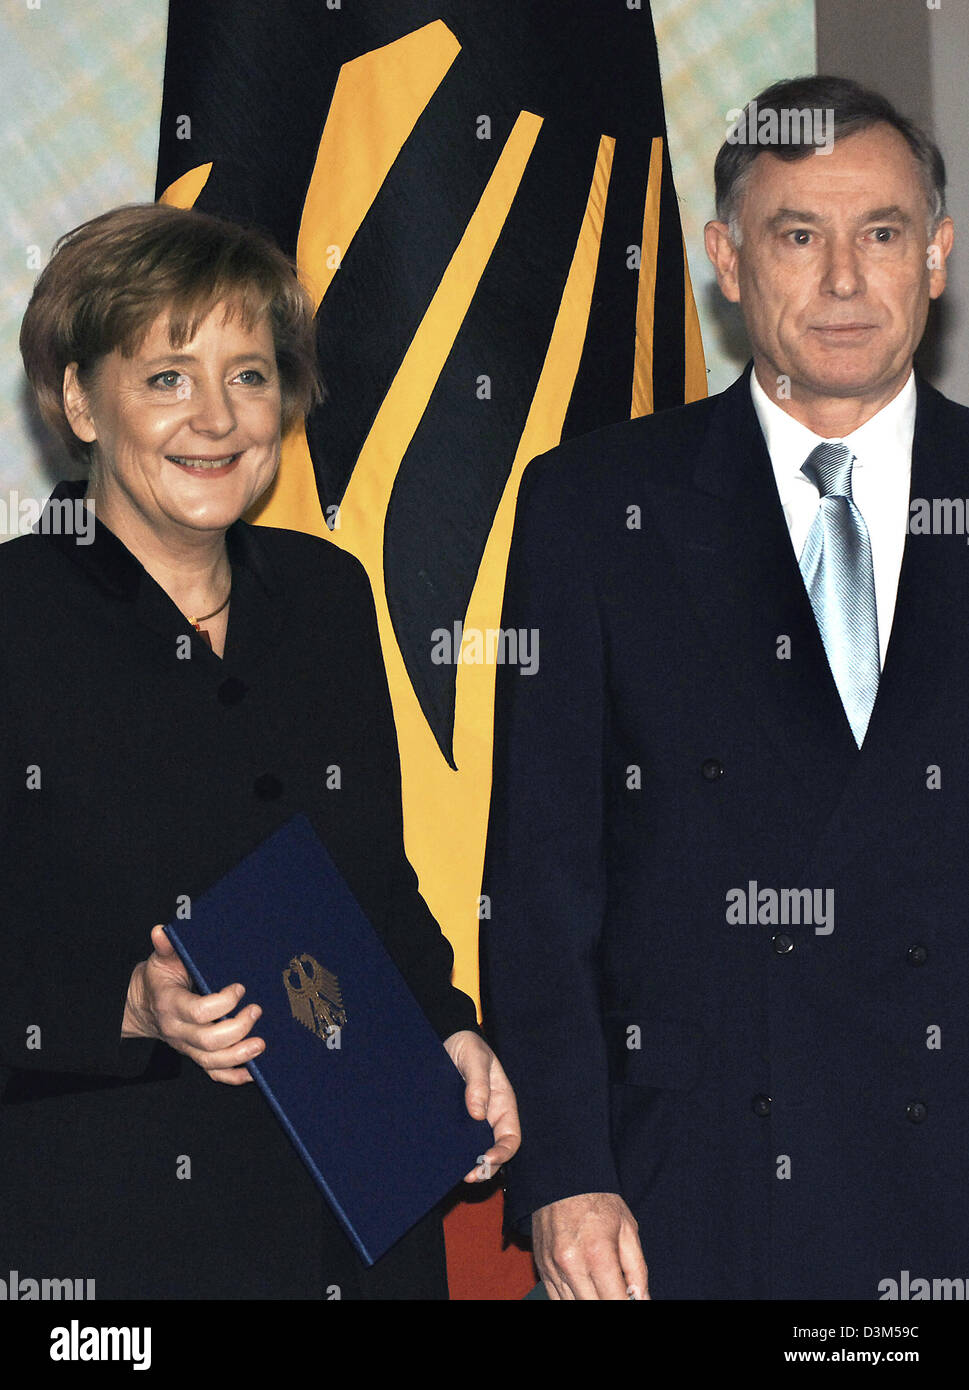 (dpa) - New elect German Chancellor Angela Merkel (CDU) is presented her certificate of appointment as German Chancellor Stock Photo